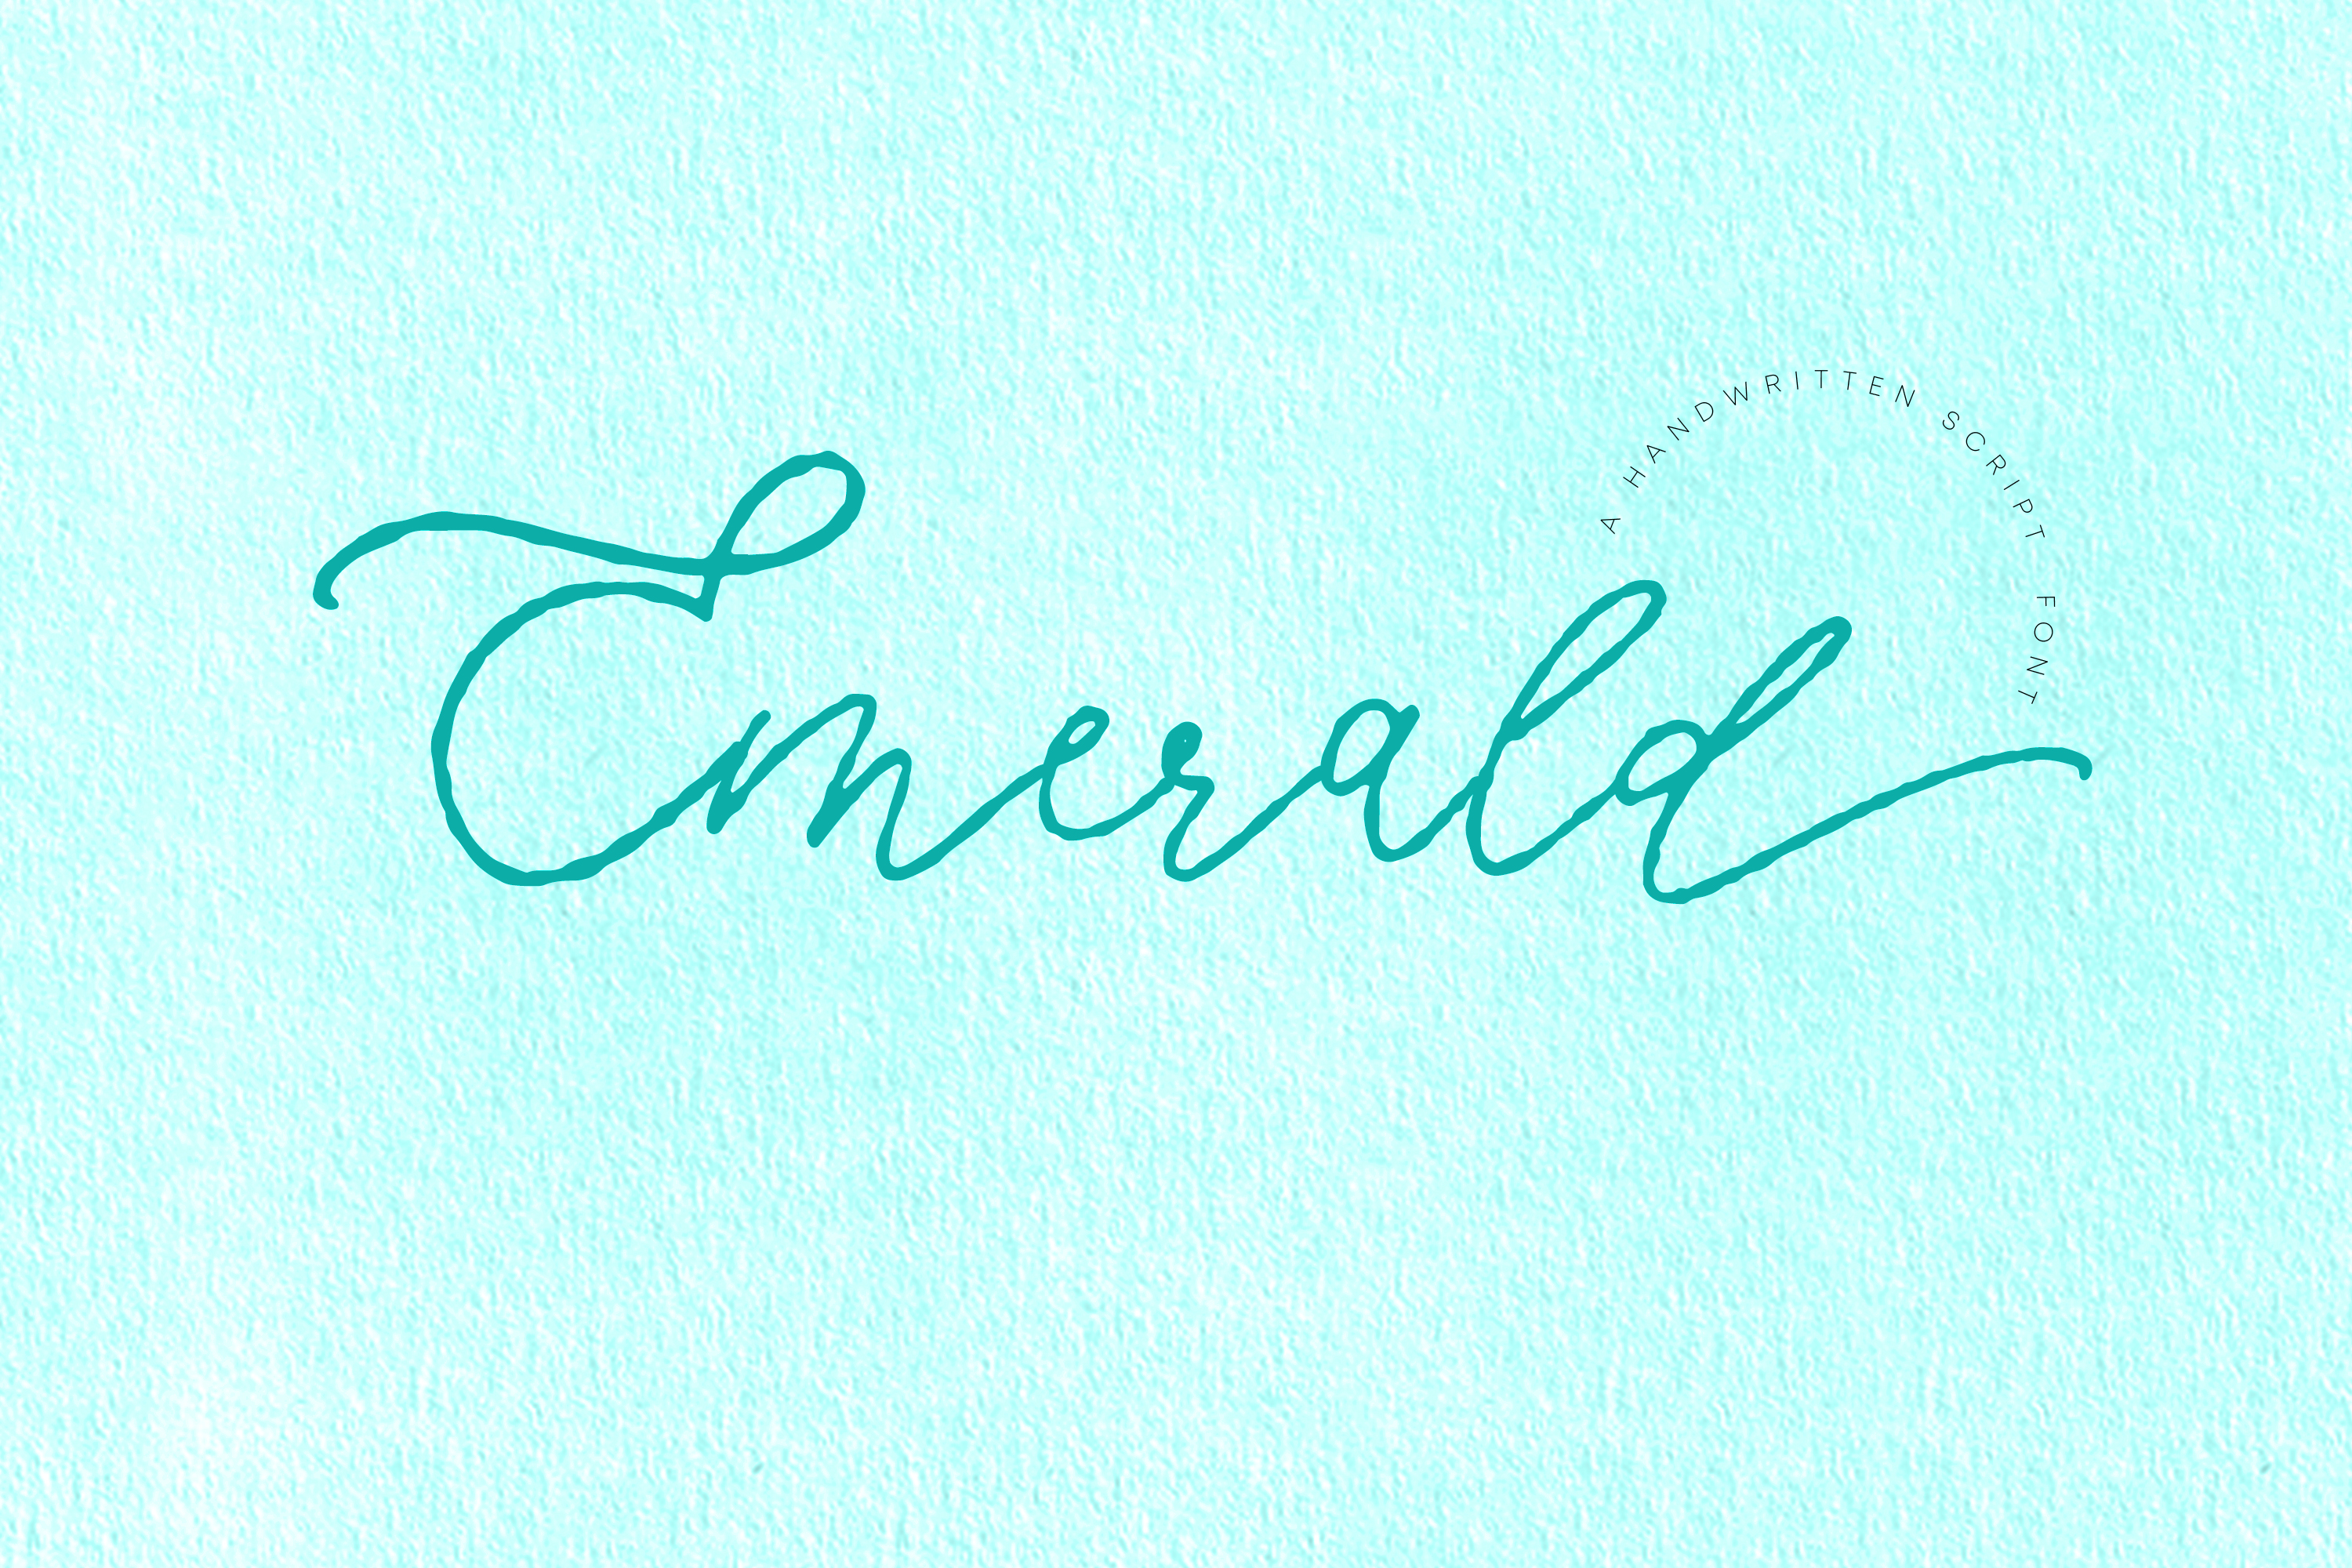 Emerald, imperfect modern calligraphy script example image 1